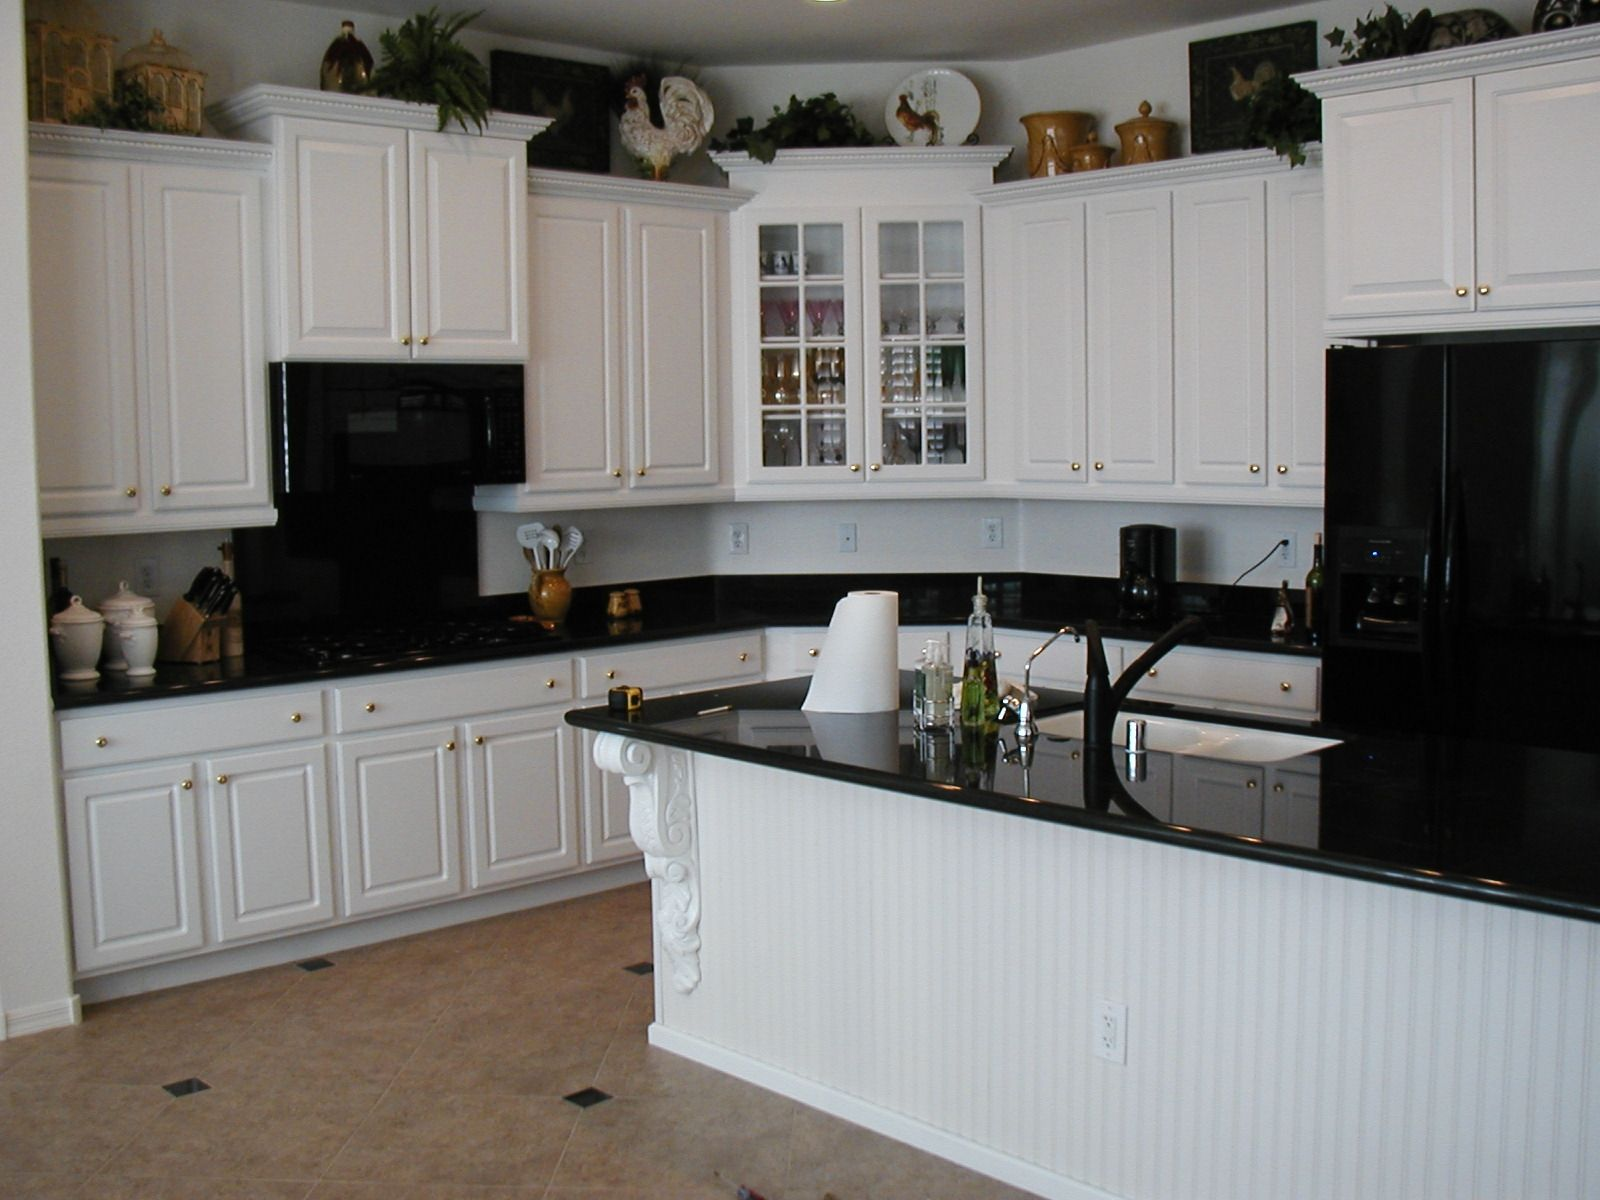 White Kitchen Appliances With Wood Cabinets creamy white kitchen cabinets with black appliances | are white